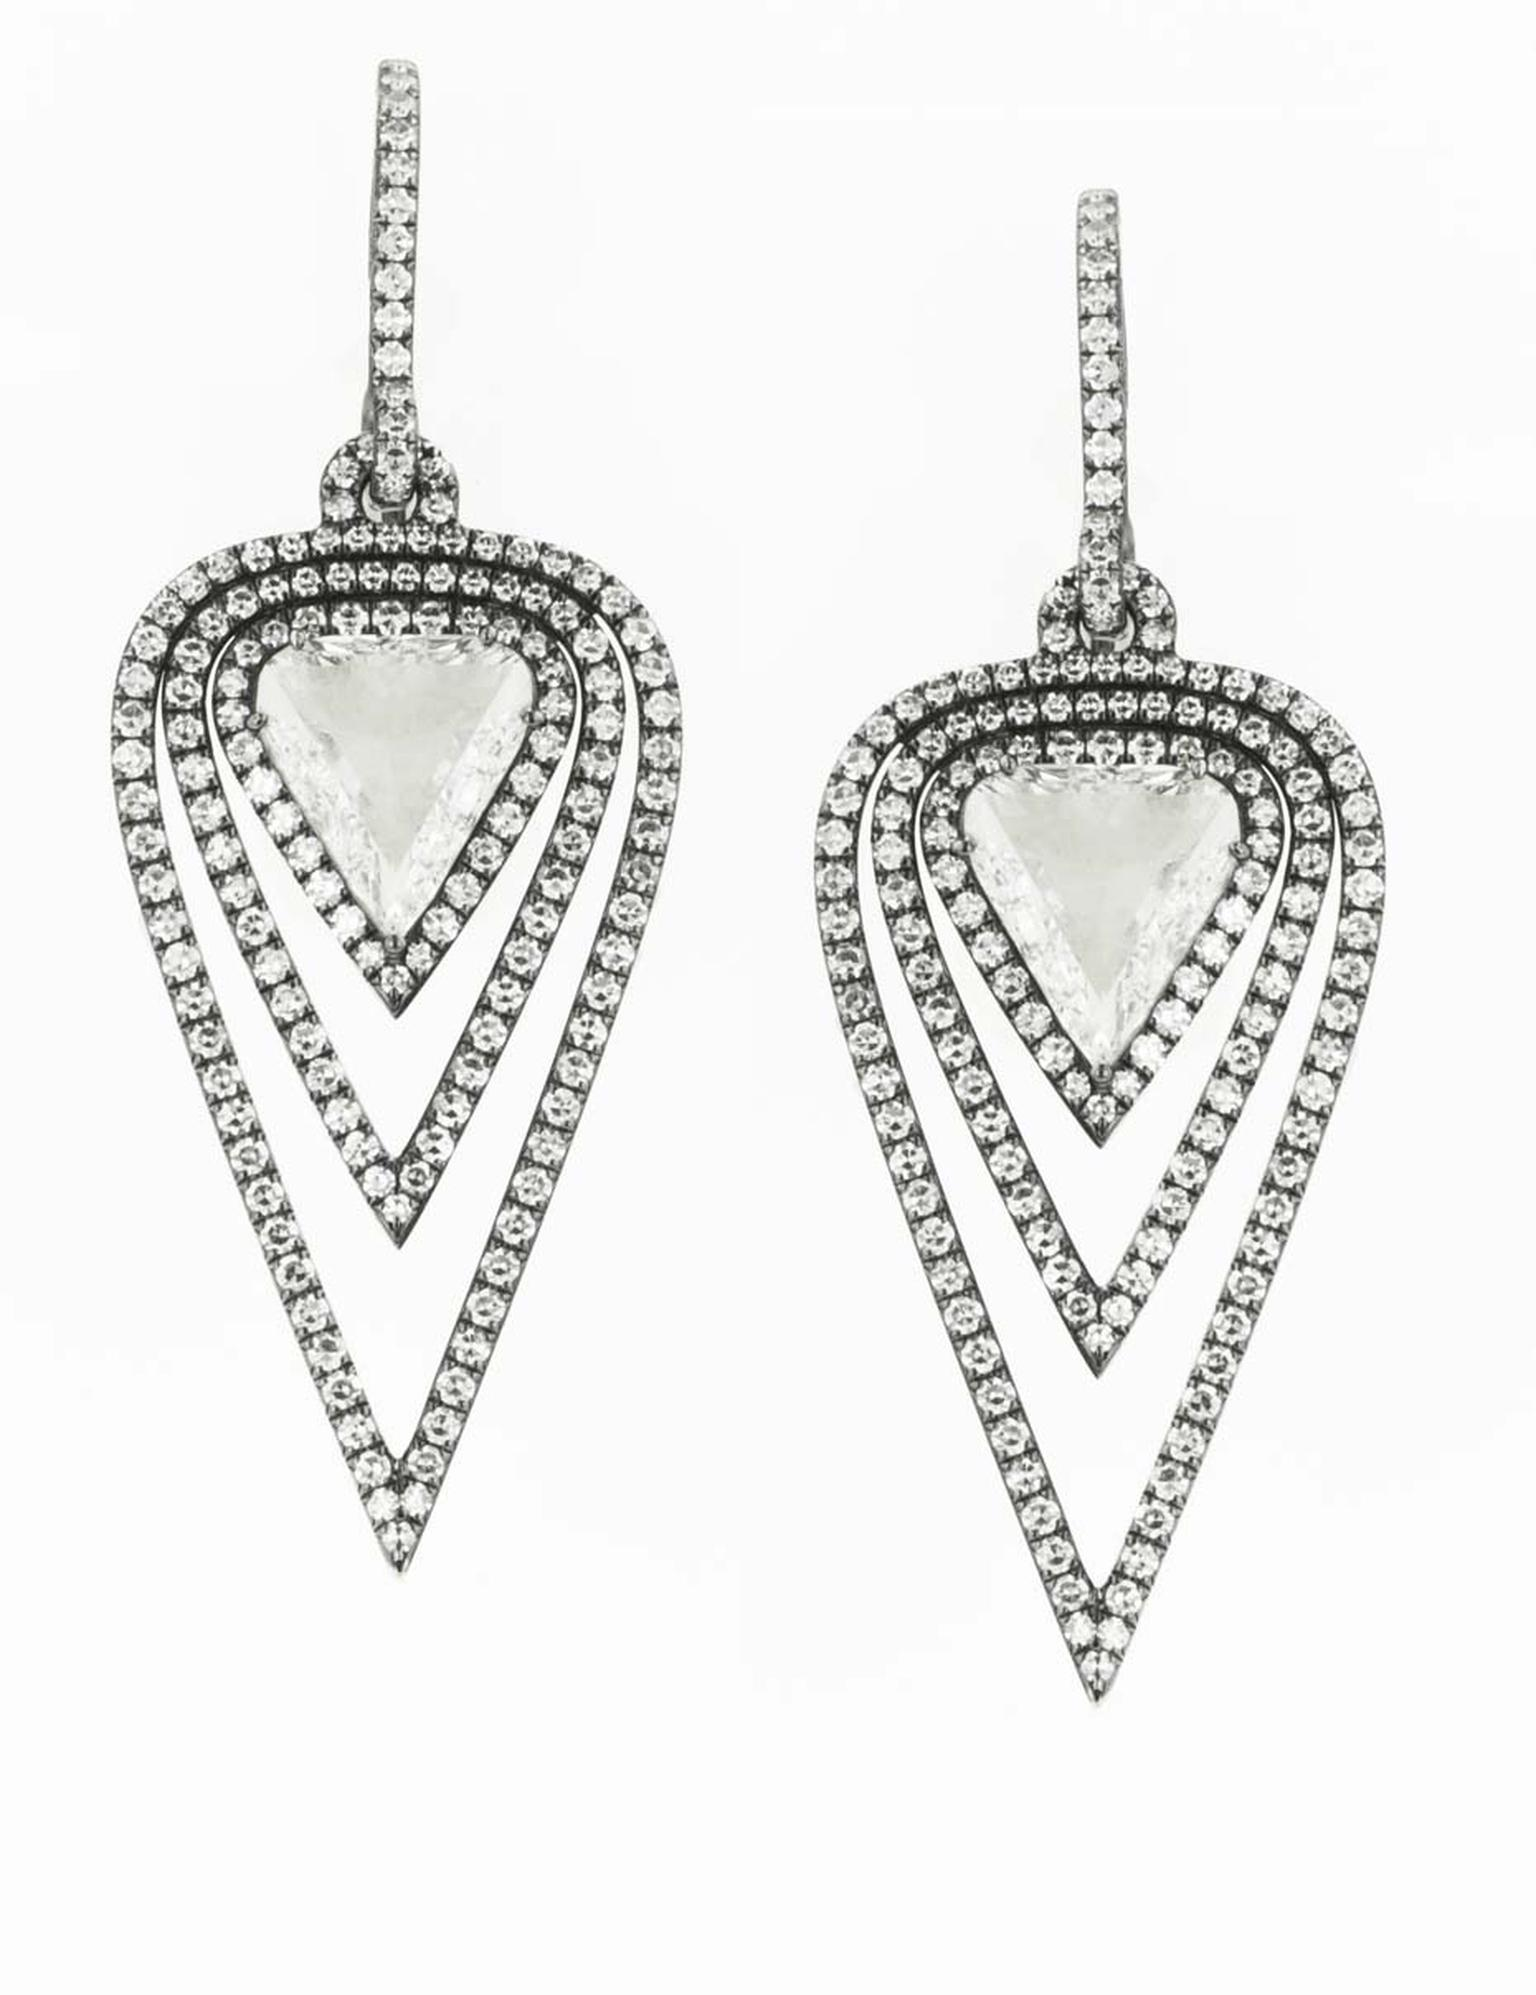 Martin Katz New York collection diamond earrings in antiqued white gold, set with 3.30ct triangular rose-cut diamonds